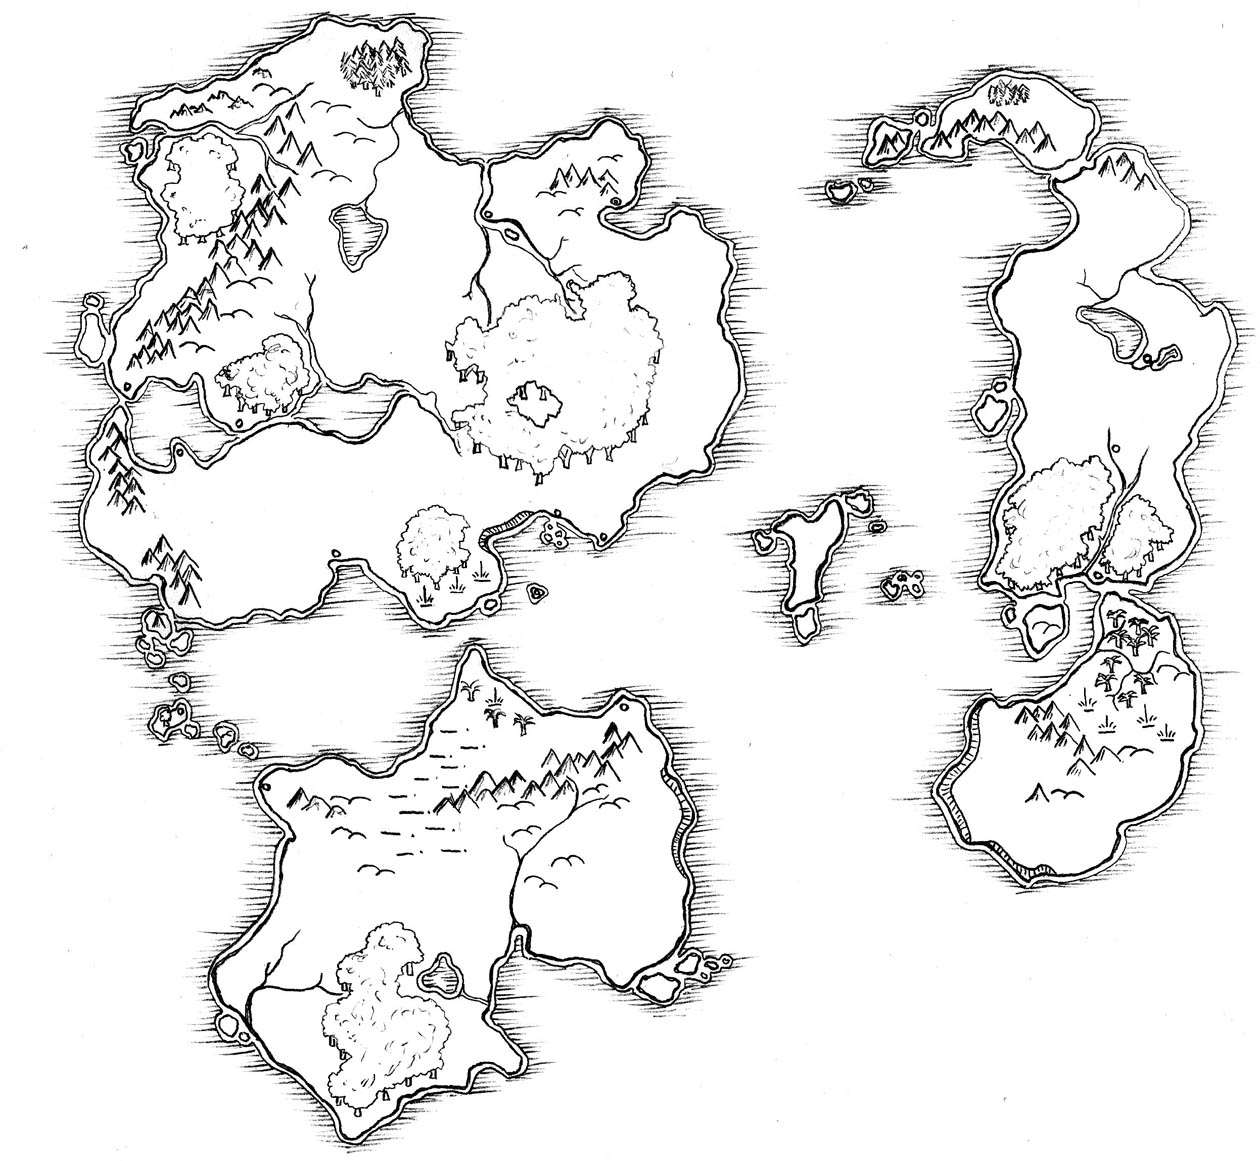 Blank Fantasy World Map Black And White